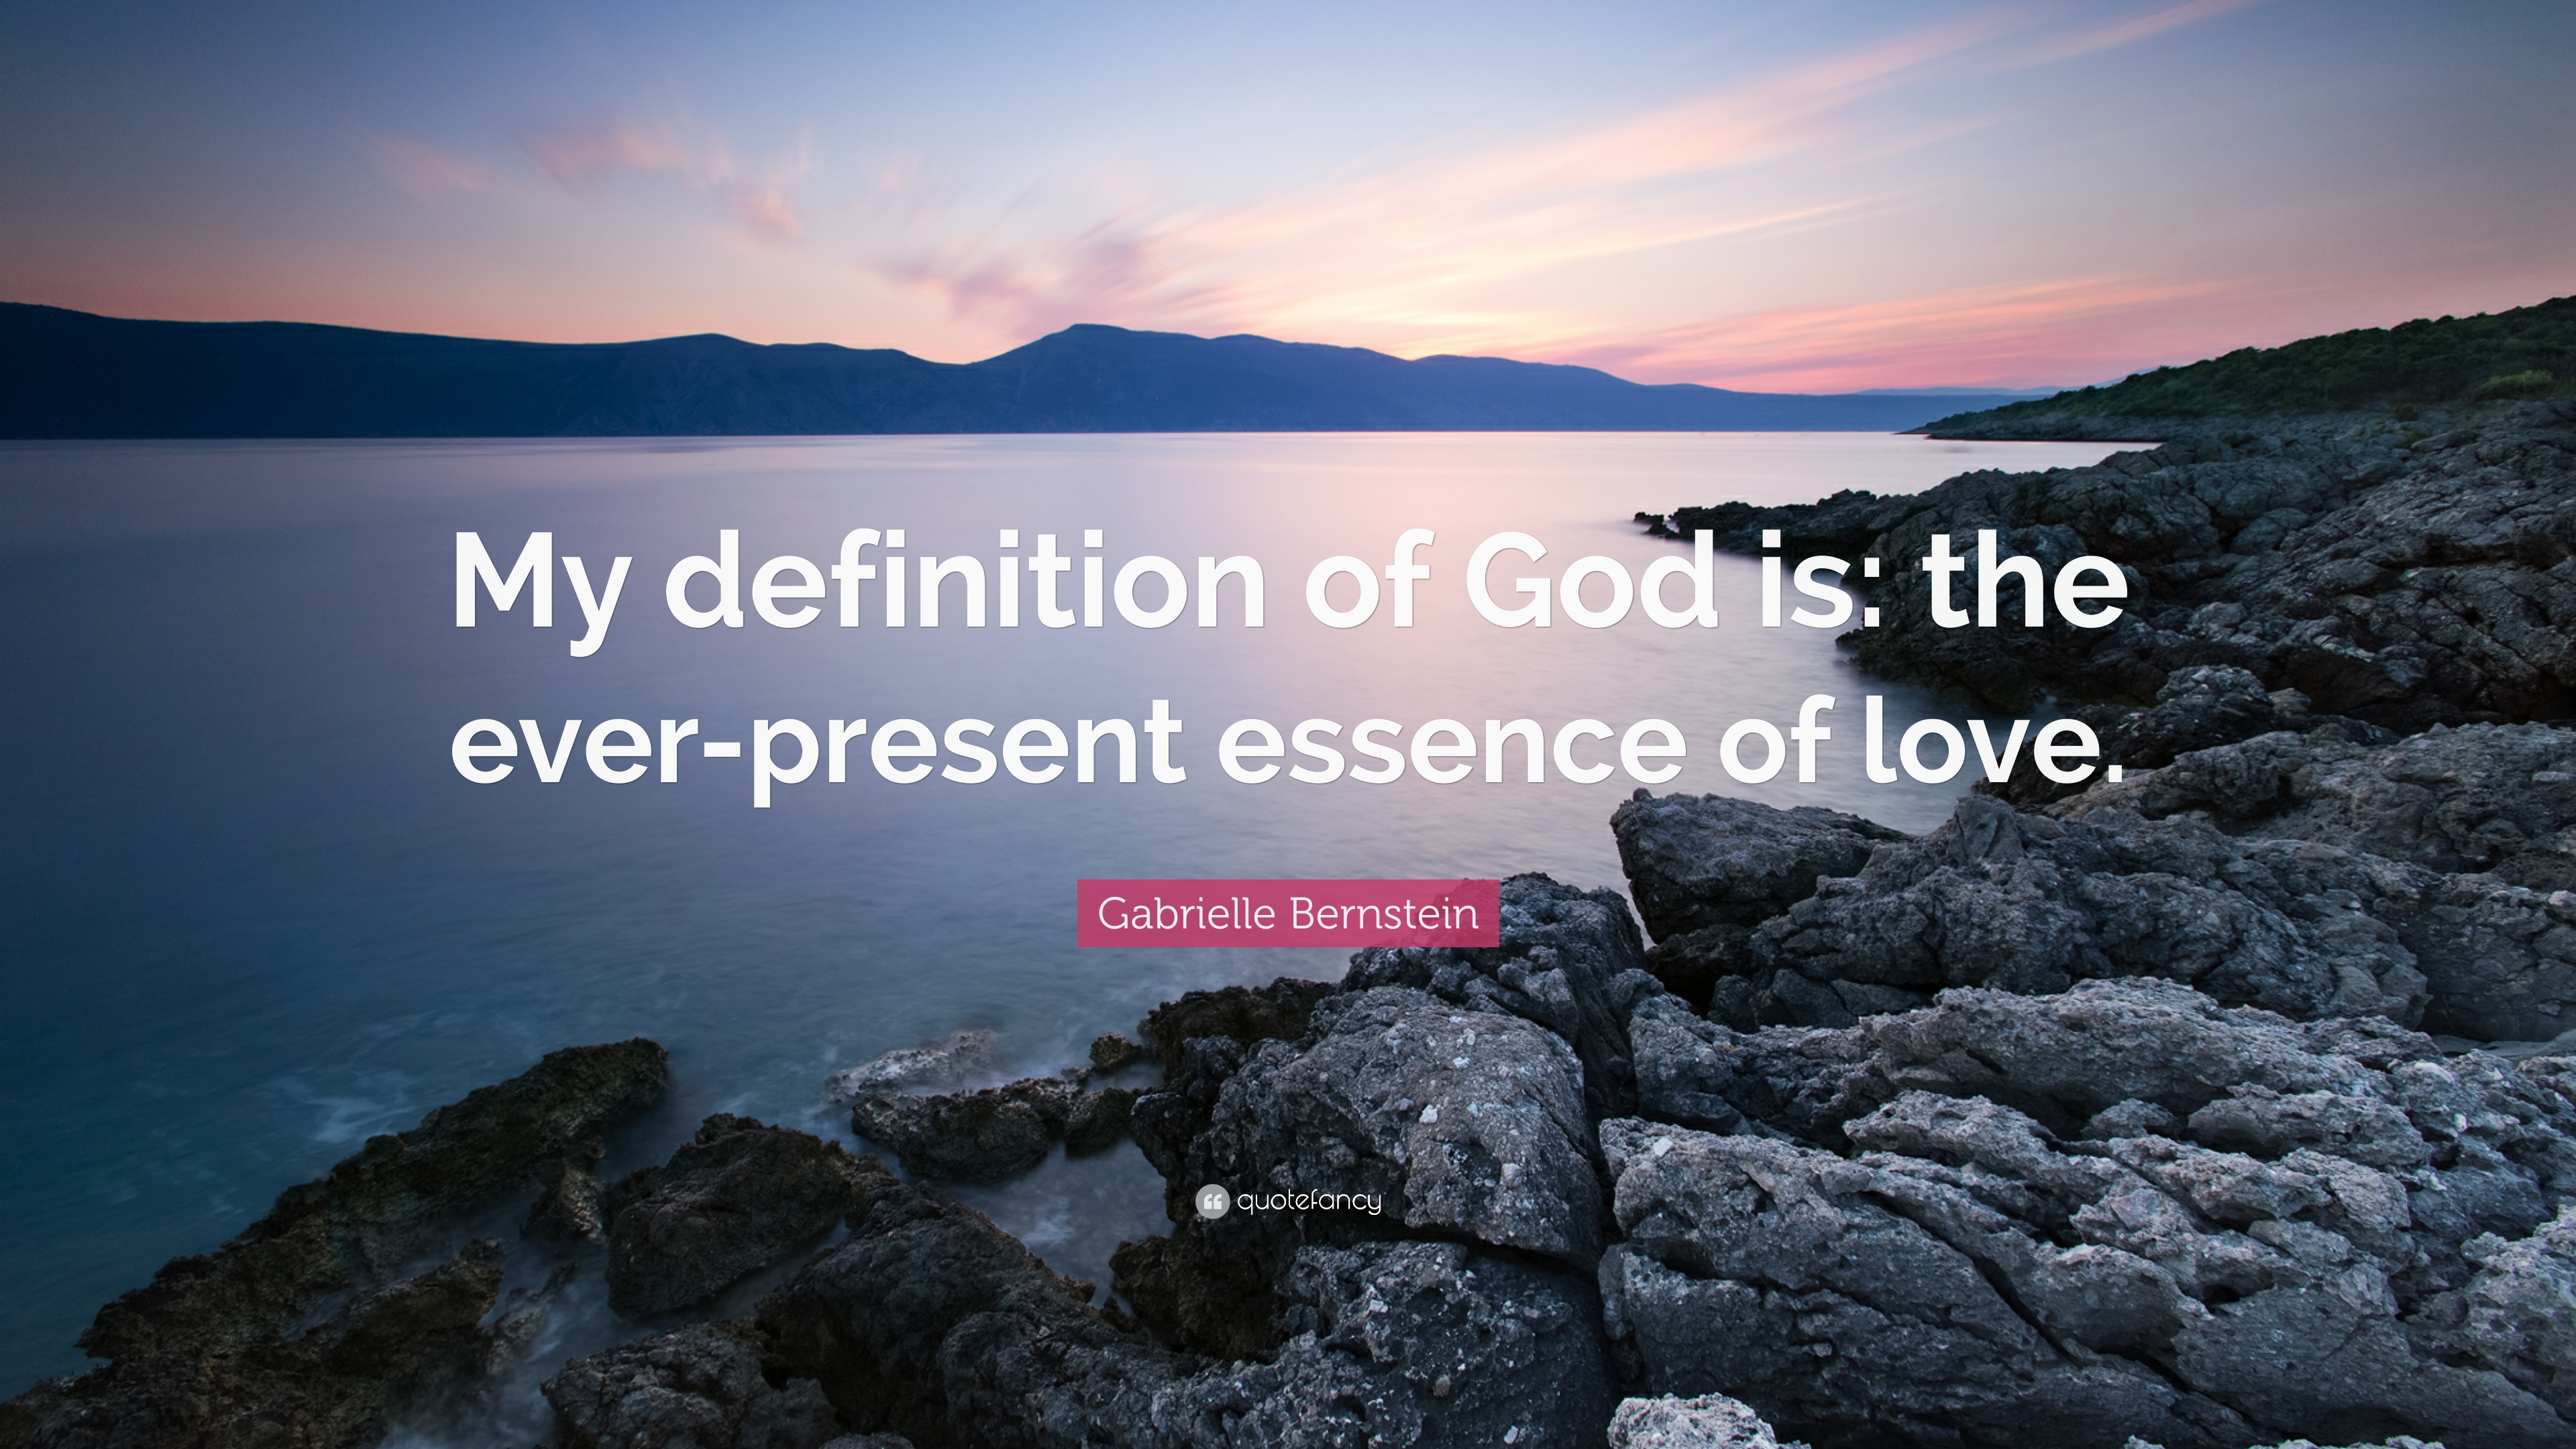 Charming Gabrielle Bernstein Quote: U201cMy Definition Of God Is: The Ever Present  Essence